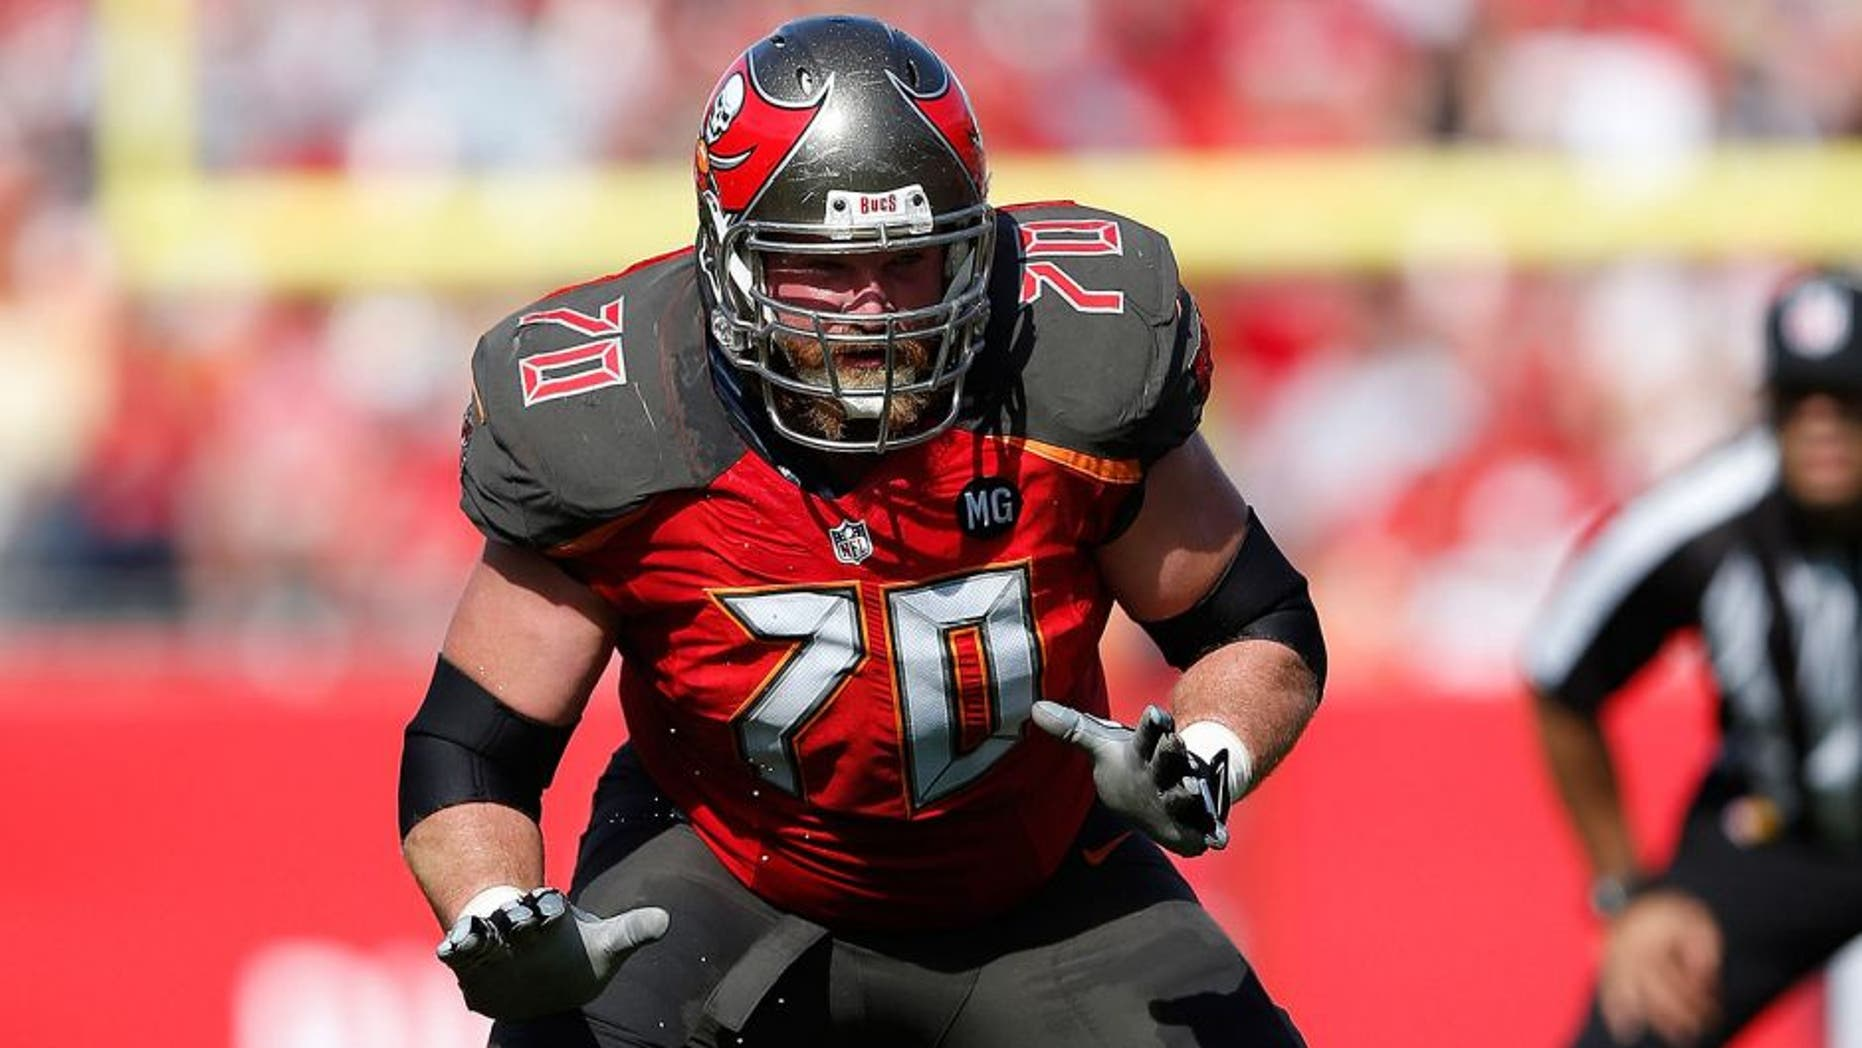 TAMPA, FL - DECEMBER 28: Logan Mankins #70 of the Tampa Bay Buccaneers blocks against the New Orleans Saints during the game at Raymond James Stadium on December 28, 2014 in Tampa, Florida. The Saints defeated the Bucs 23-20. (Photo by Joe Robbins/Getty Images)